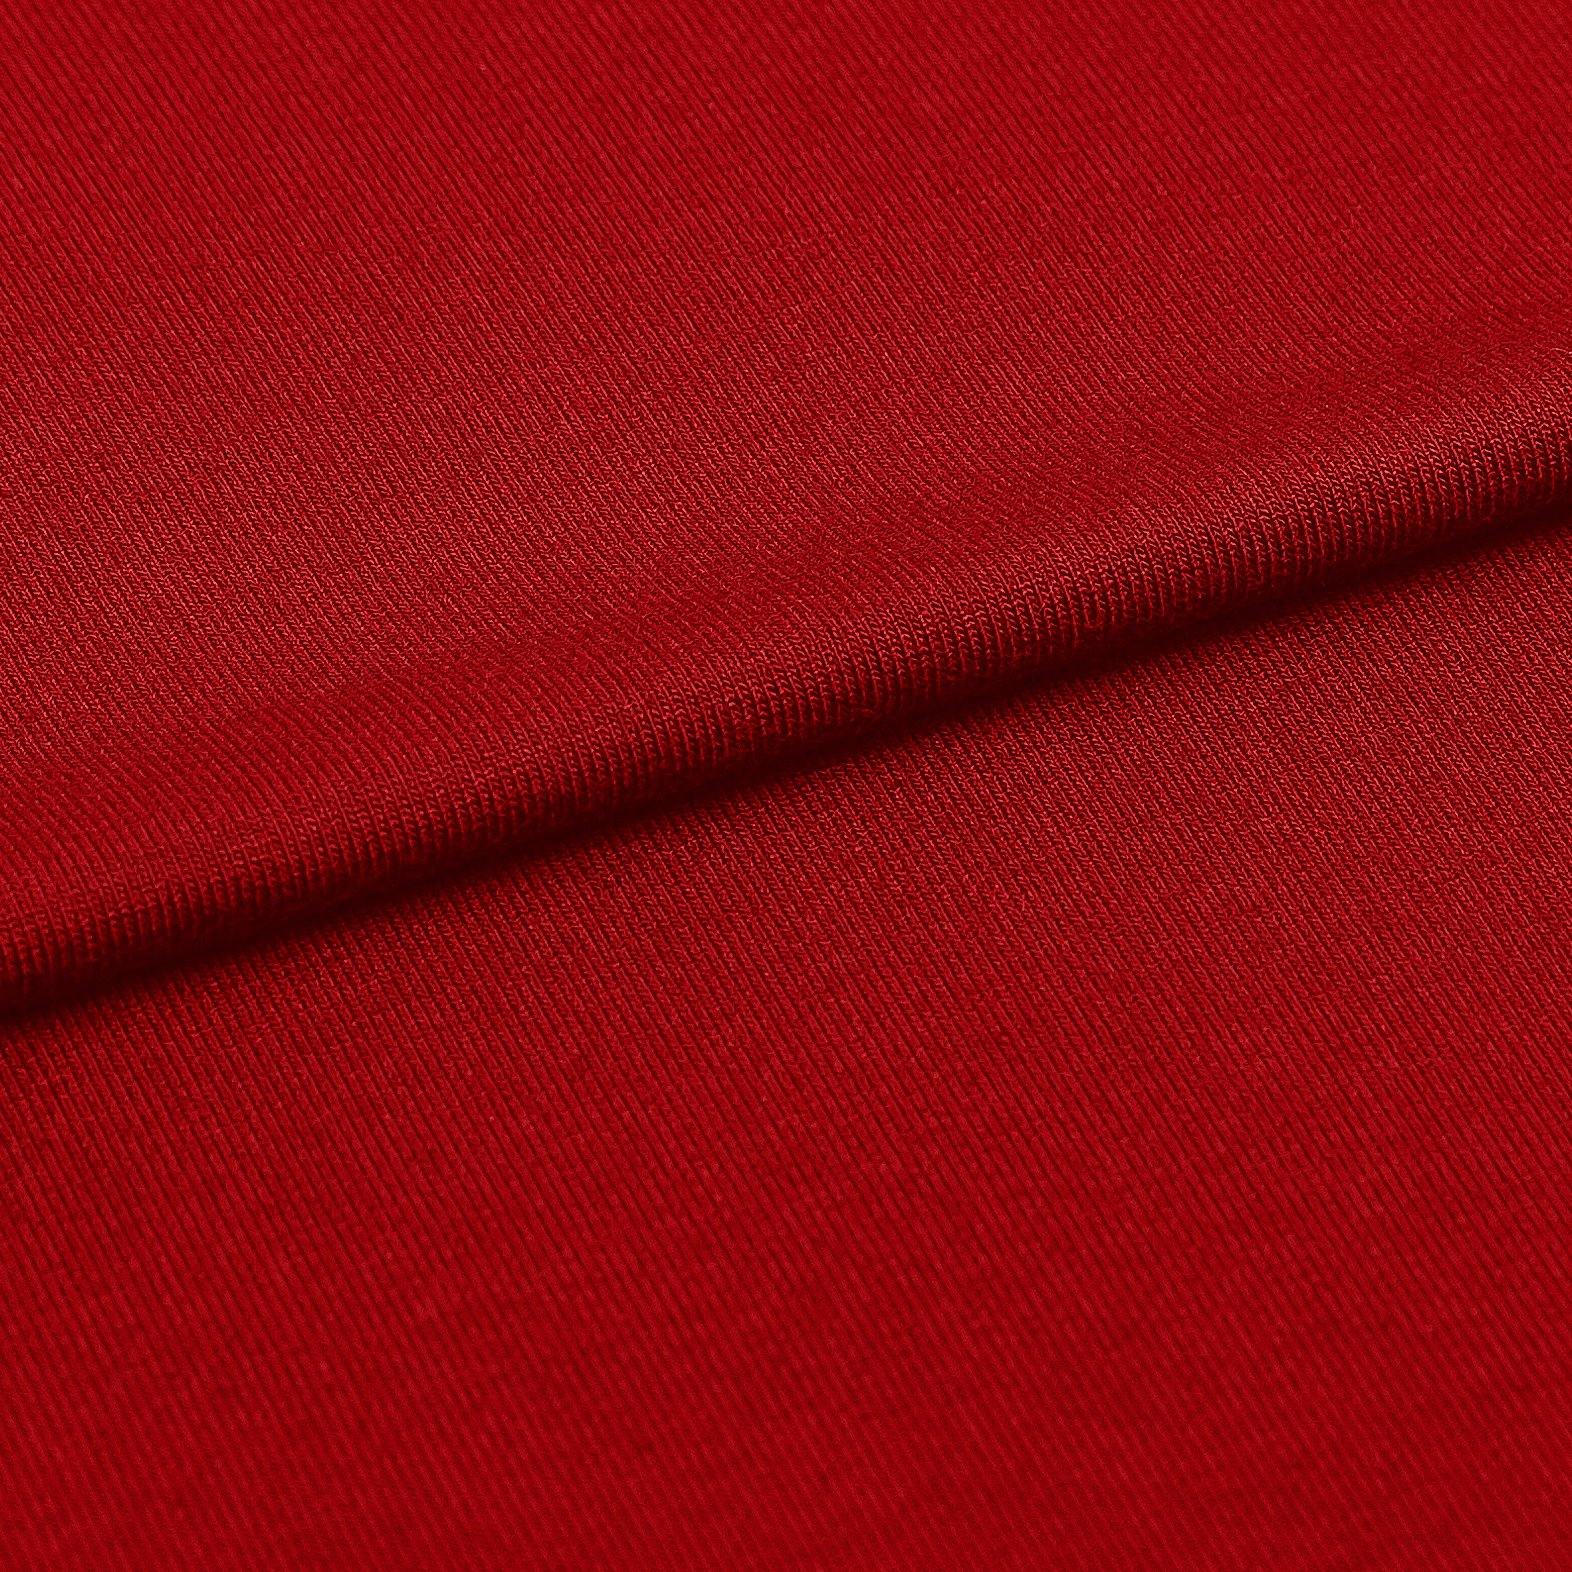 Viscose jersey red 270958_pack_d